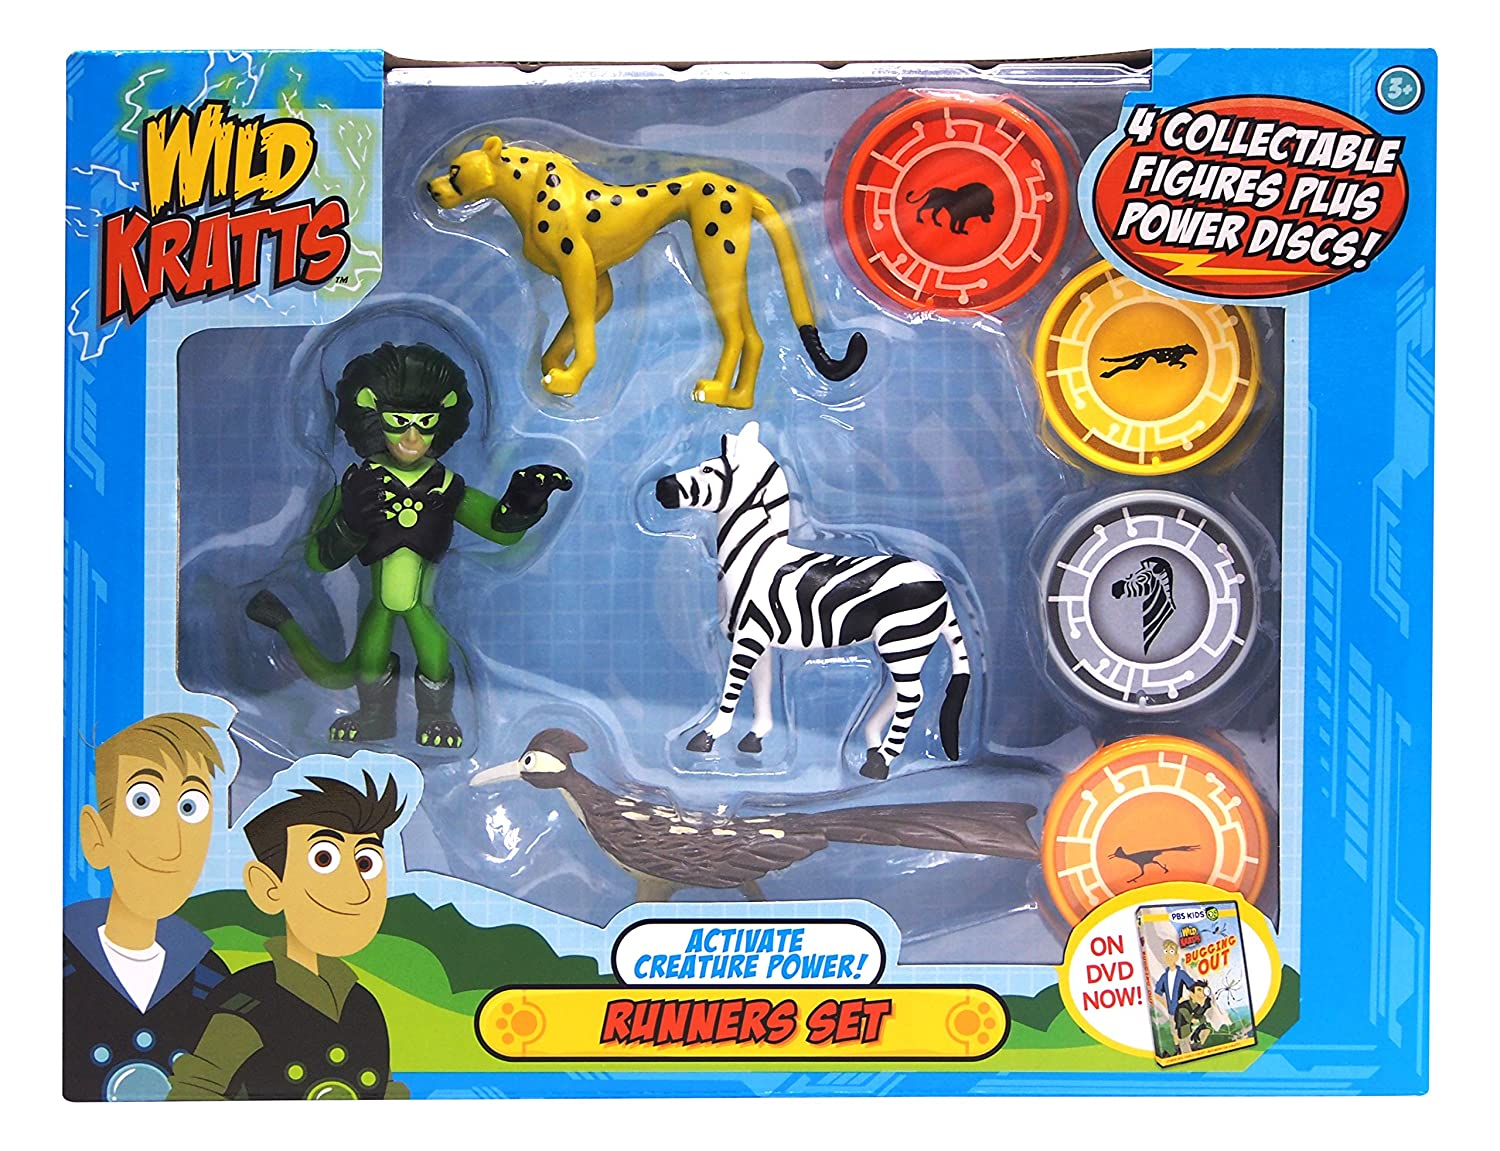 photo relating to Creature Power Discs Printable identified as Wild Kratts Creature Energy Runners Determine Preset